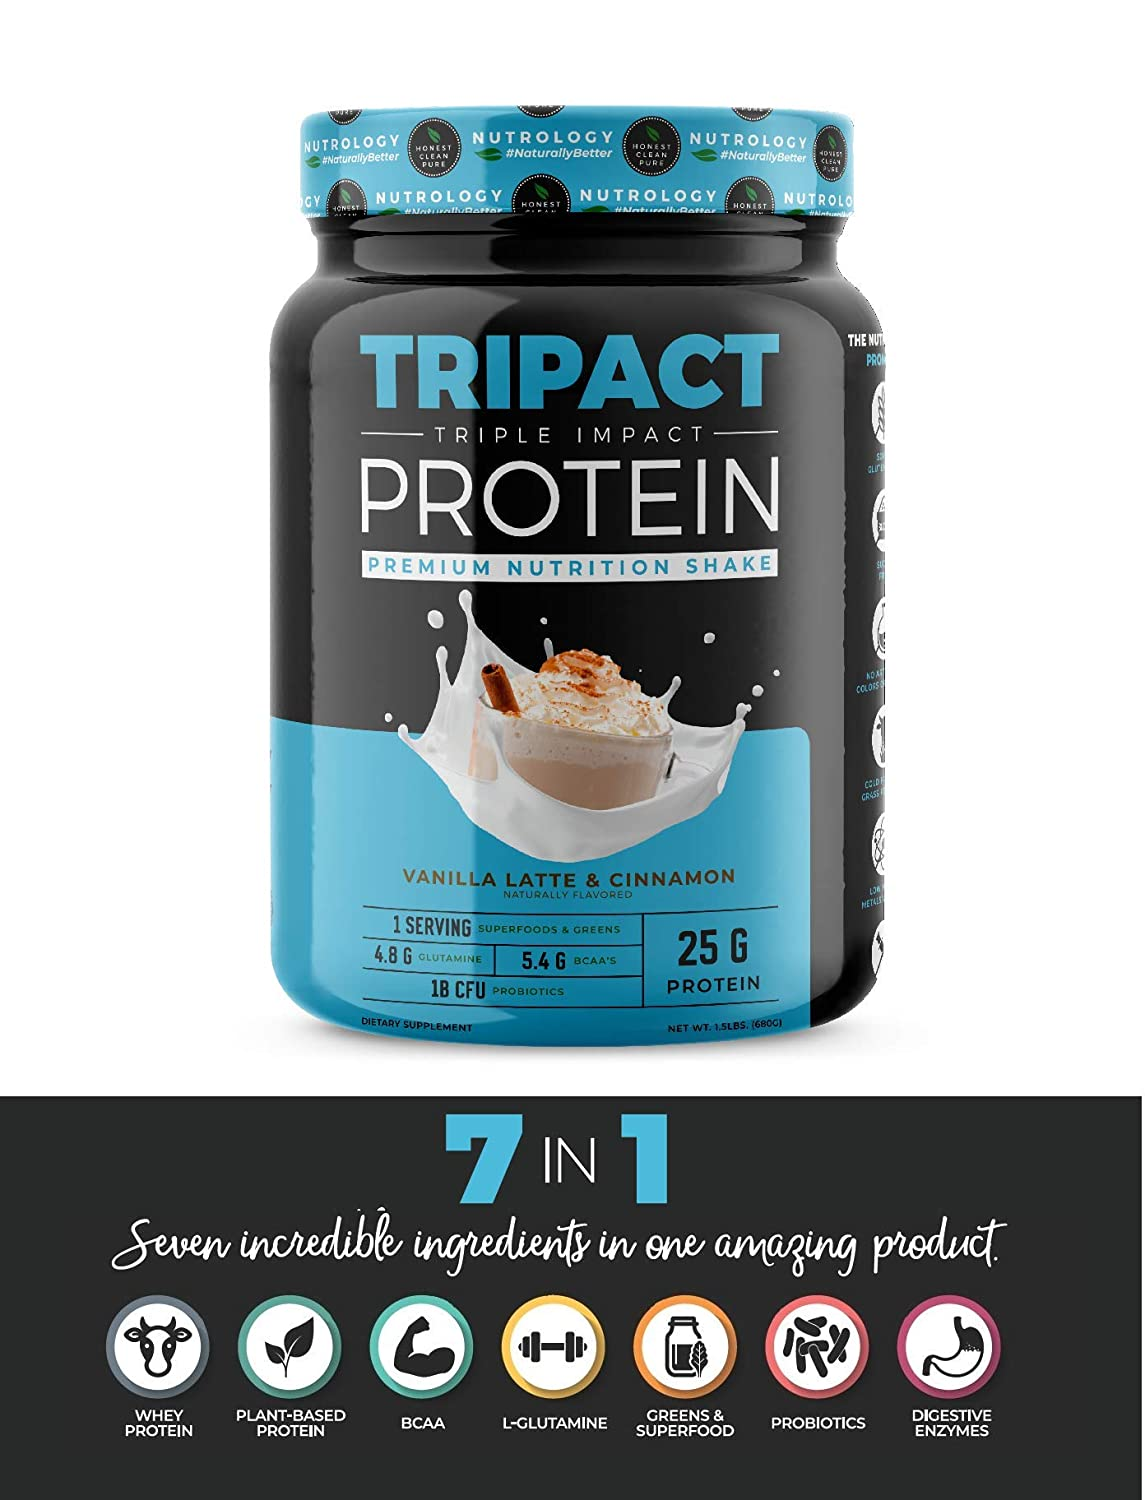 TRIPACT Protein – Vanilla Latte with Cinnamon 1.5lb. – Premium Nutrition Shake Featuring Non-GMO Grass Fed Whey Protein, Plant Proteins, Greens, Superfoods and Probiotics.